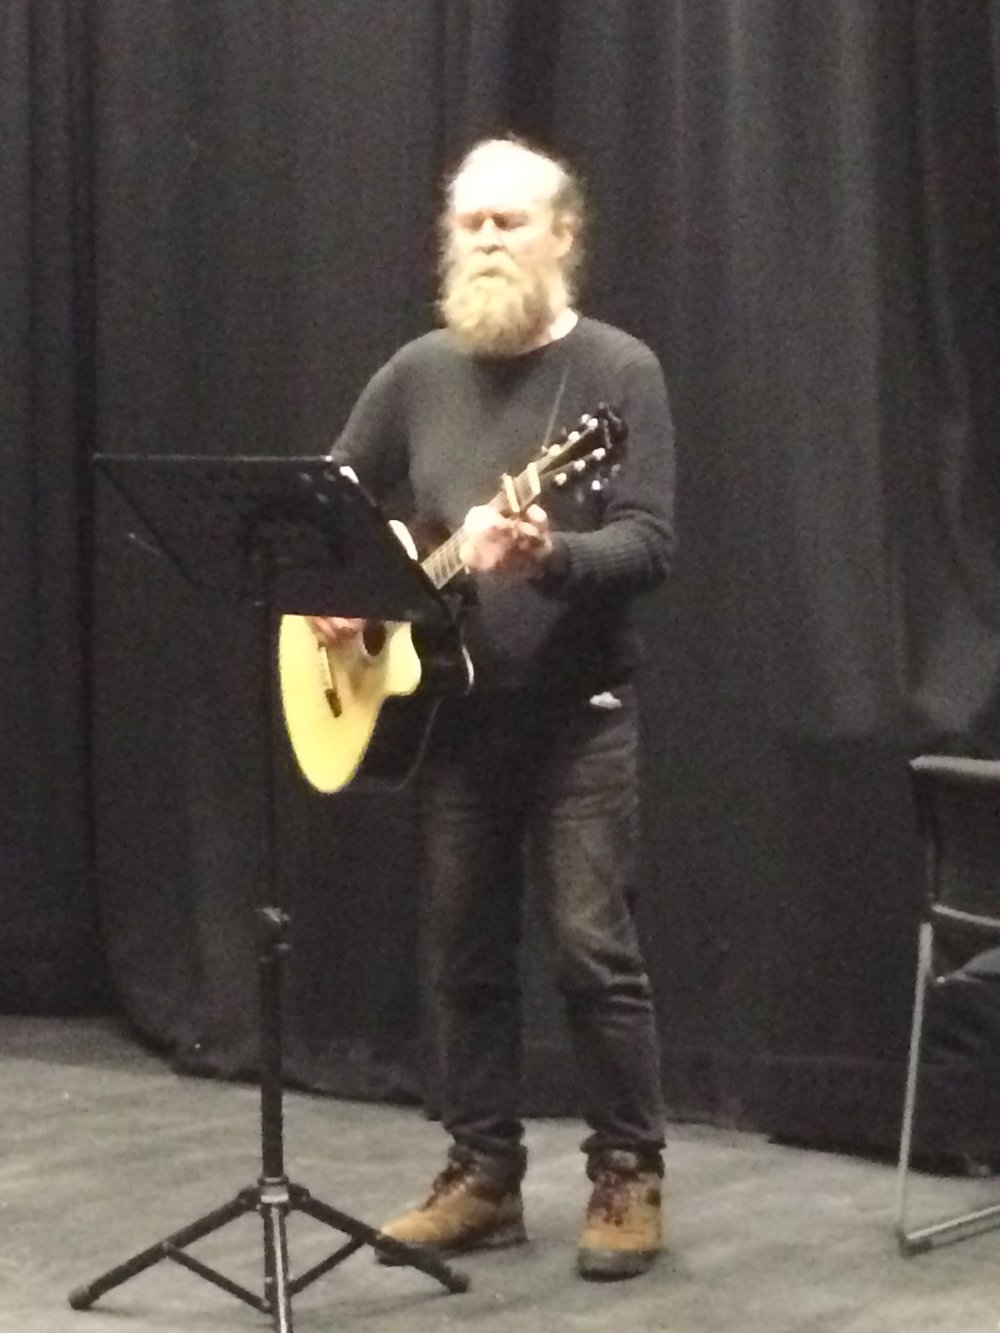 Laurie performing one of his songs